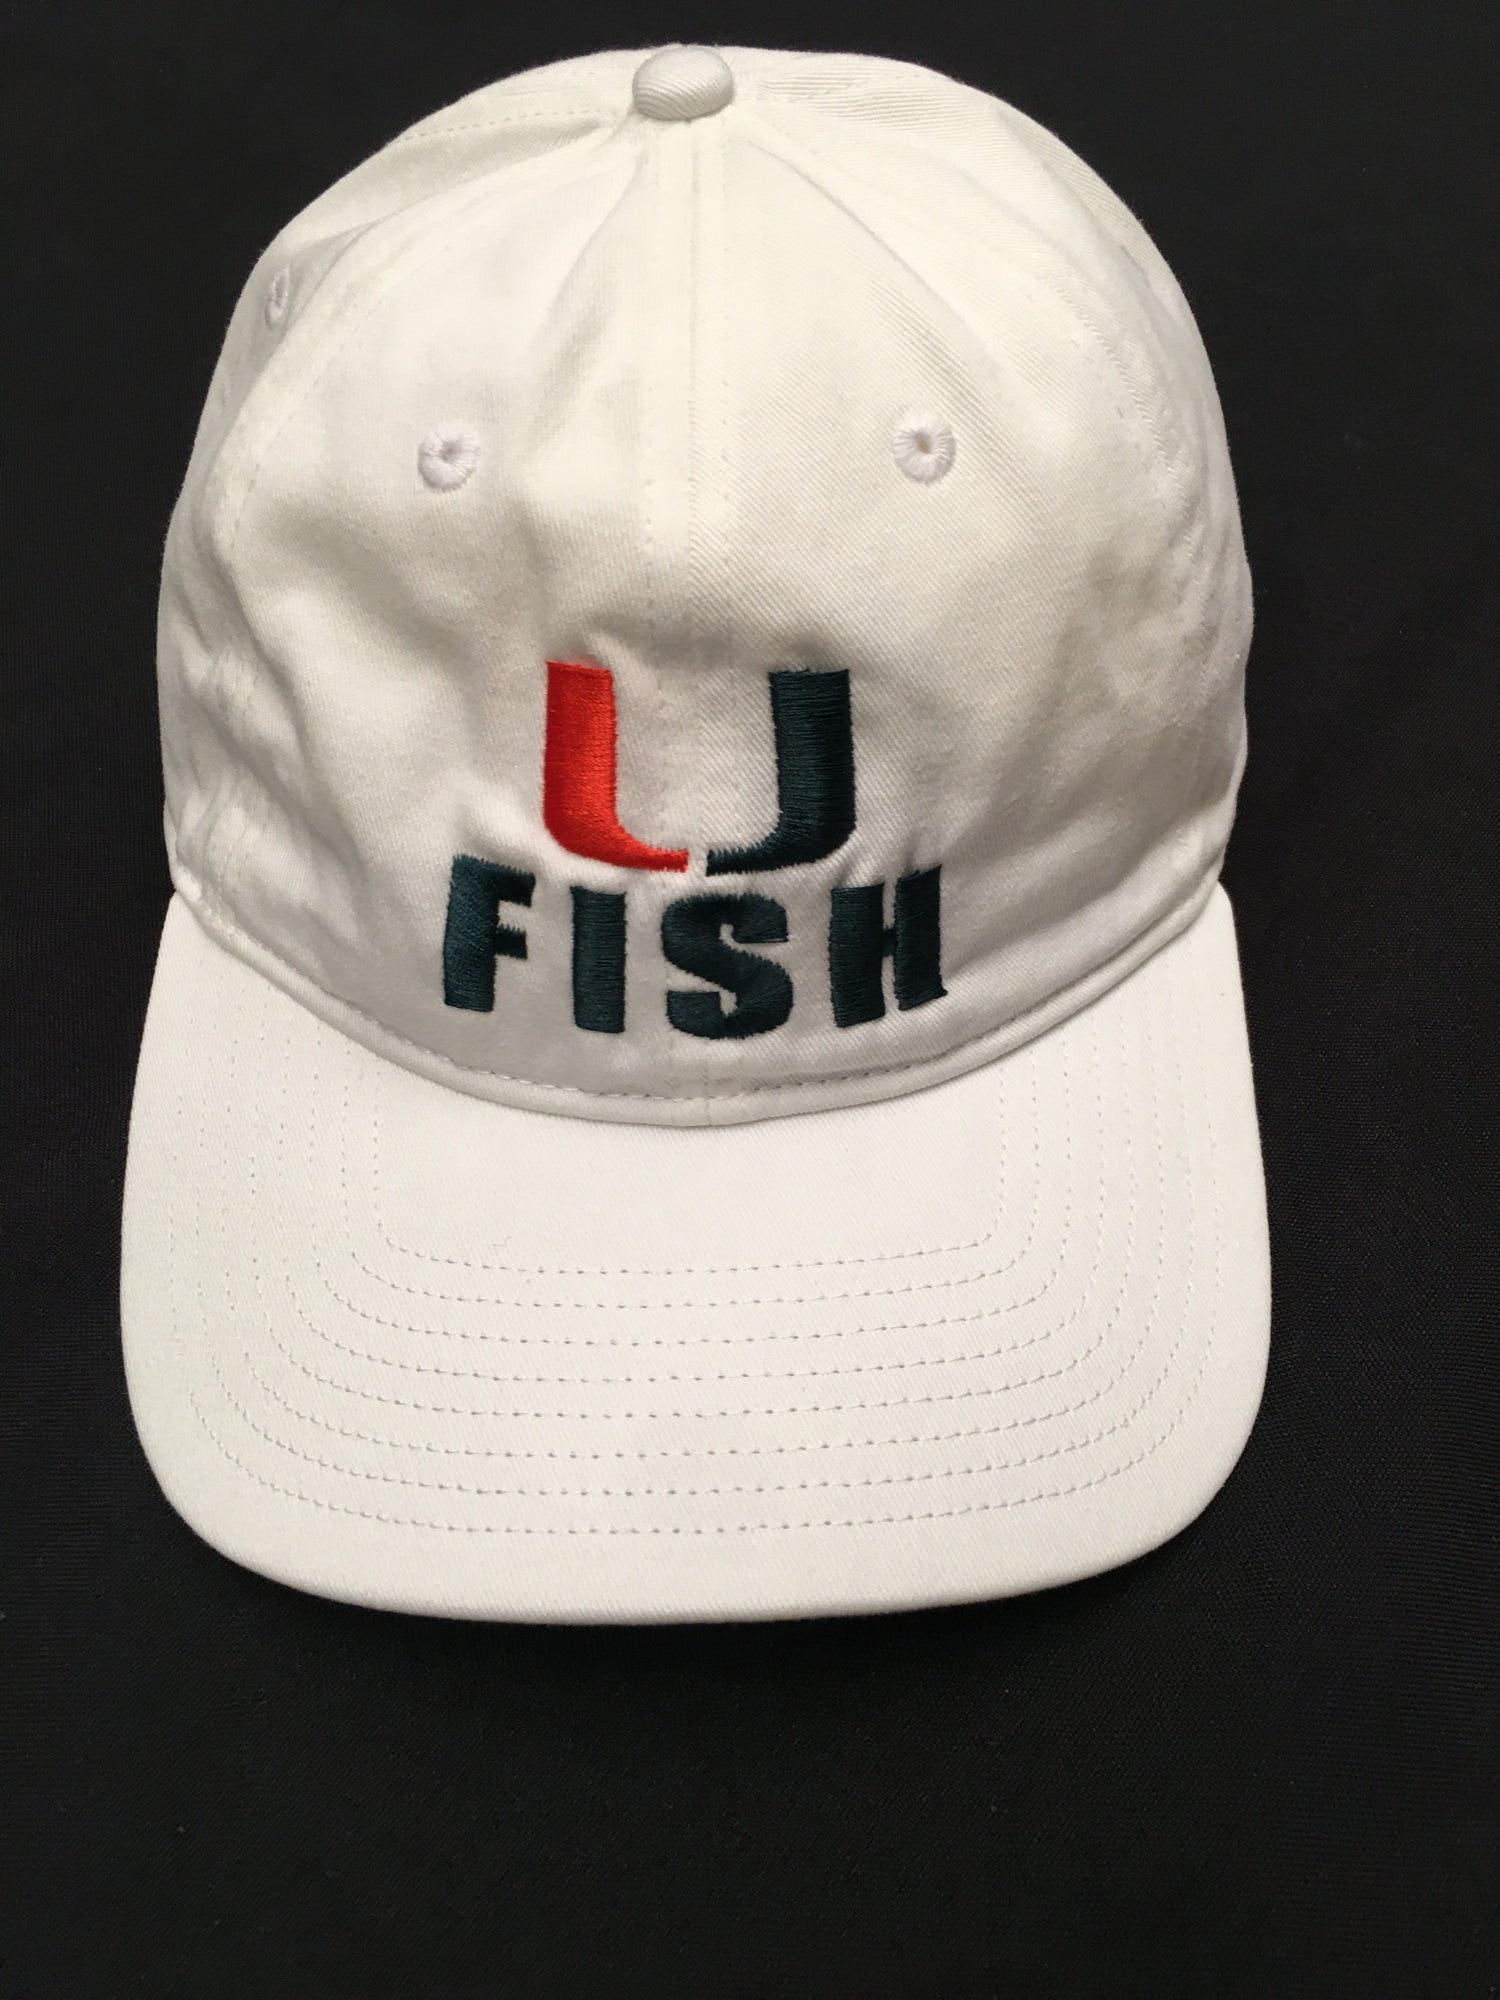 Image of U Fish hat